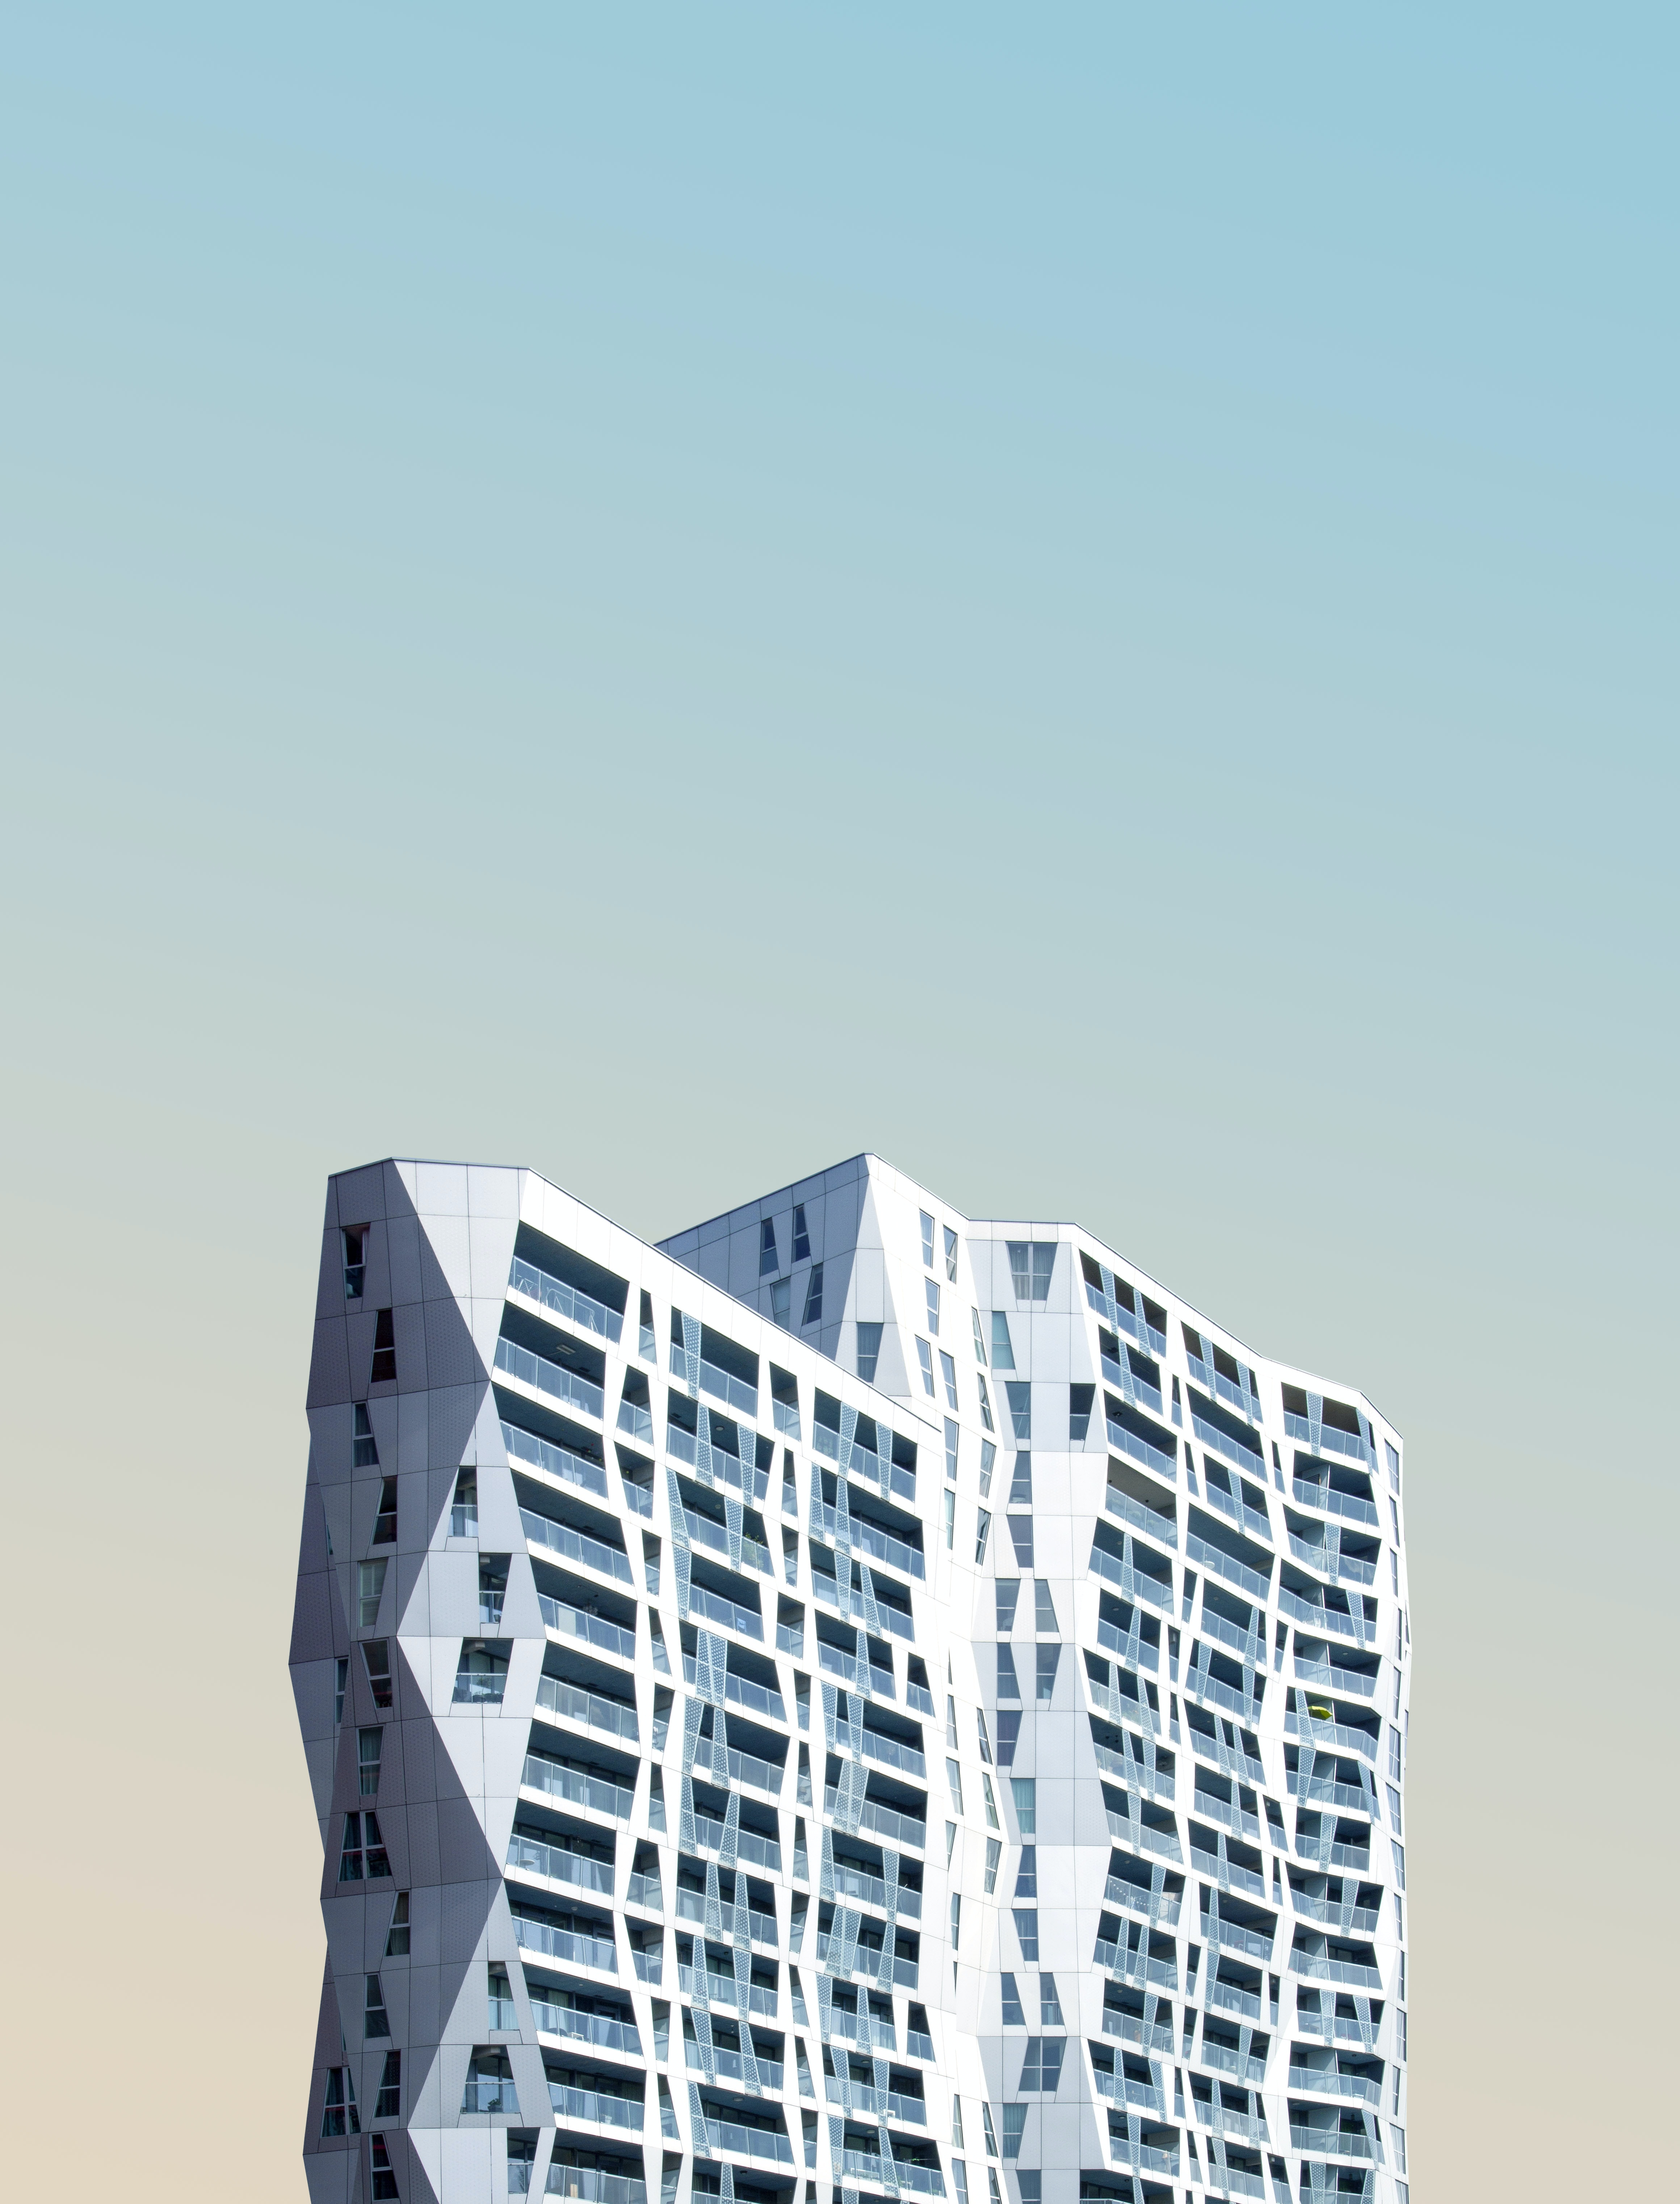 half-view photo of 3D style high-rise building